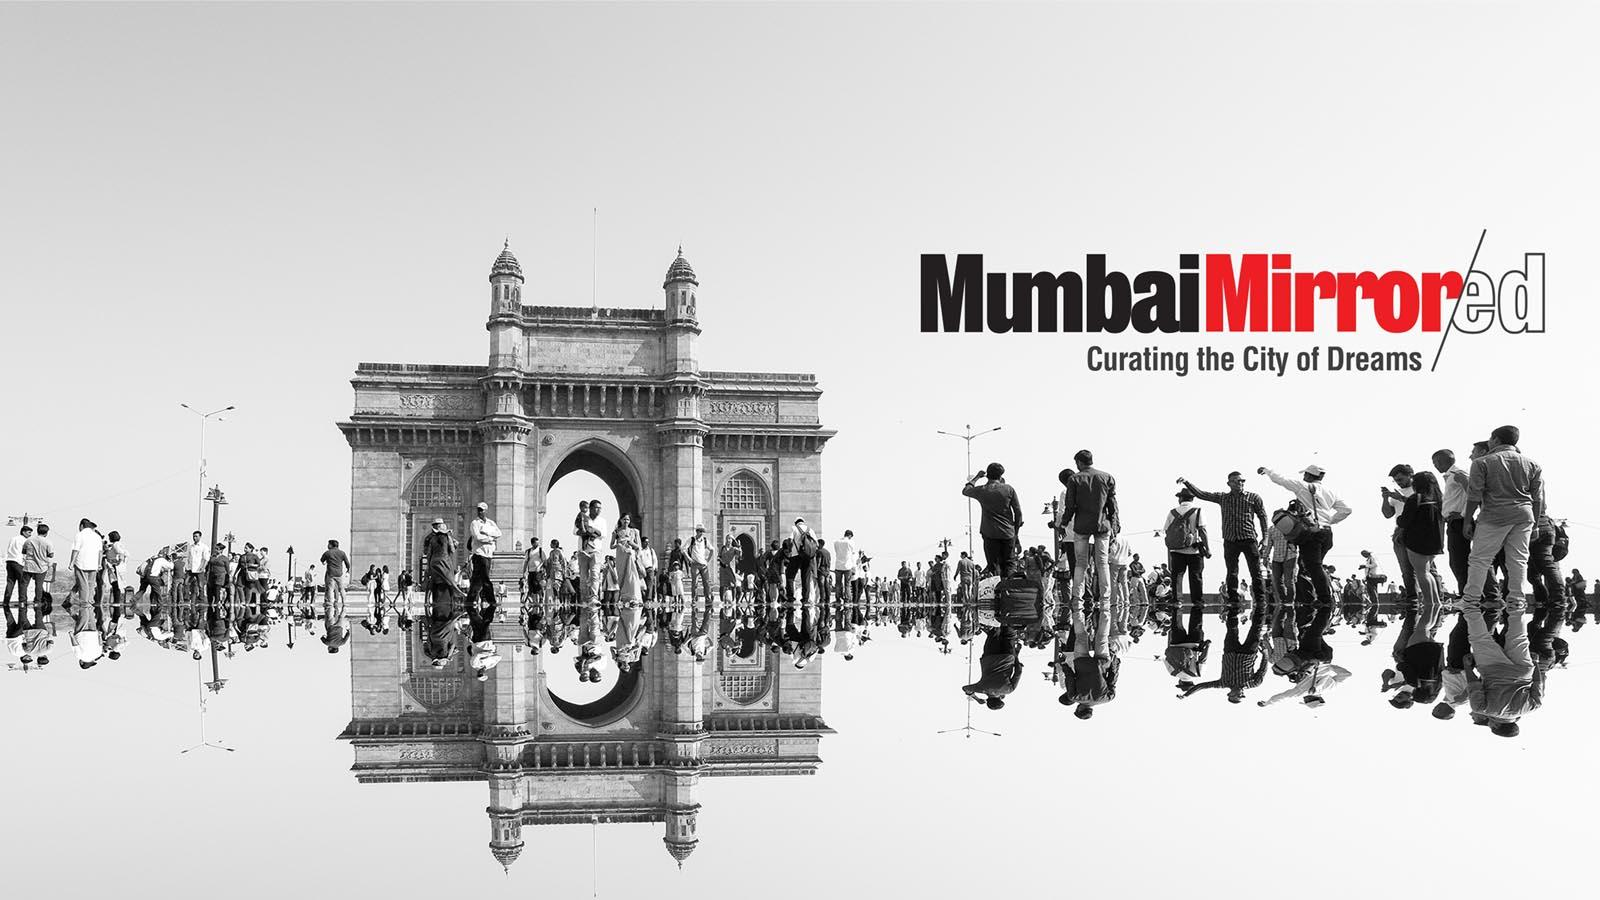 Mumbai Mirrored